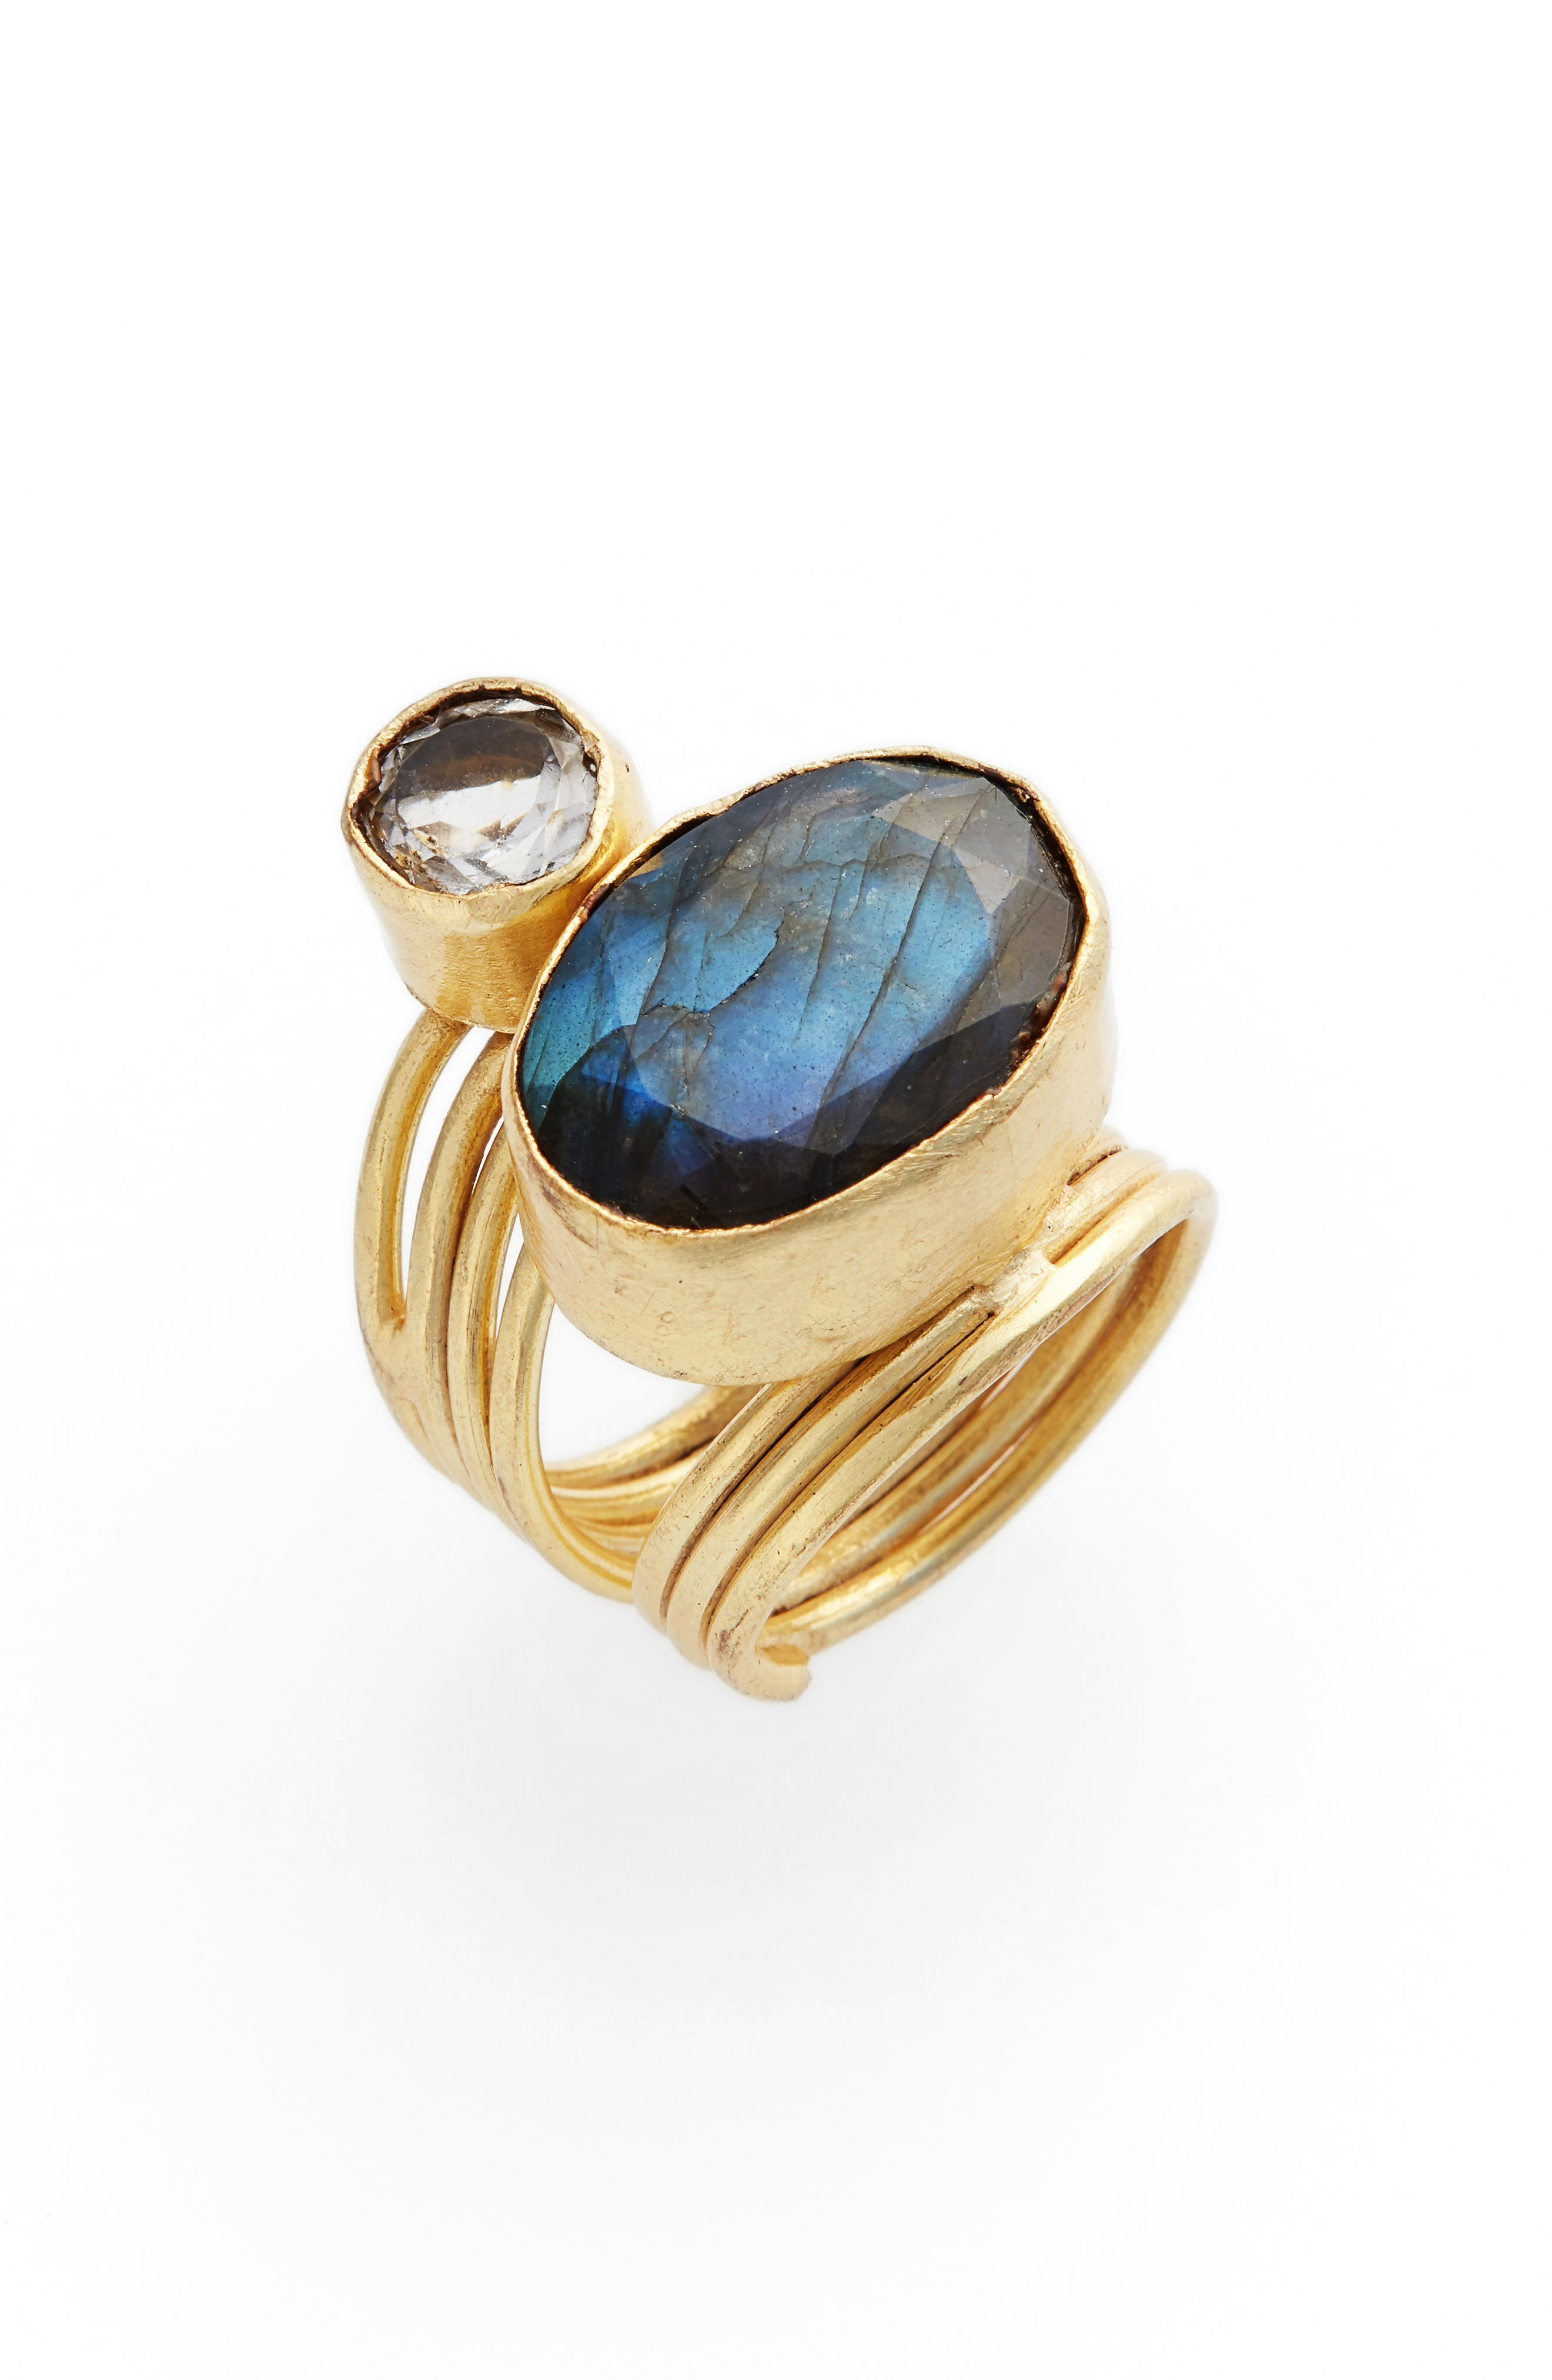 Luisa Labradorite & Crystal Ring,                         Main,                         color, Gold/ Labradoriate